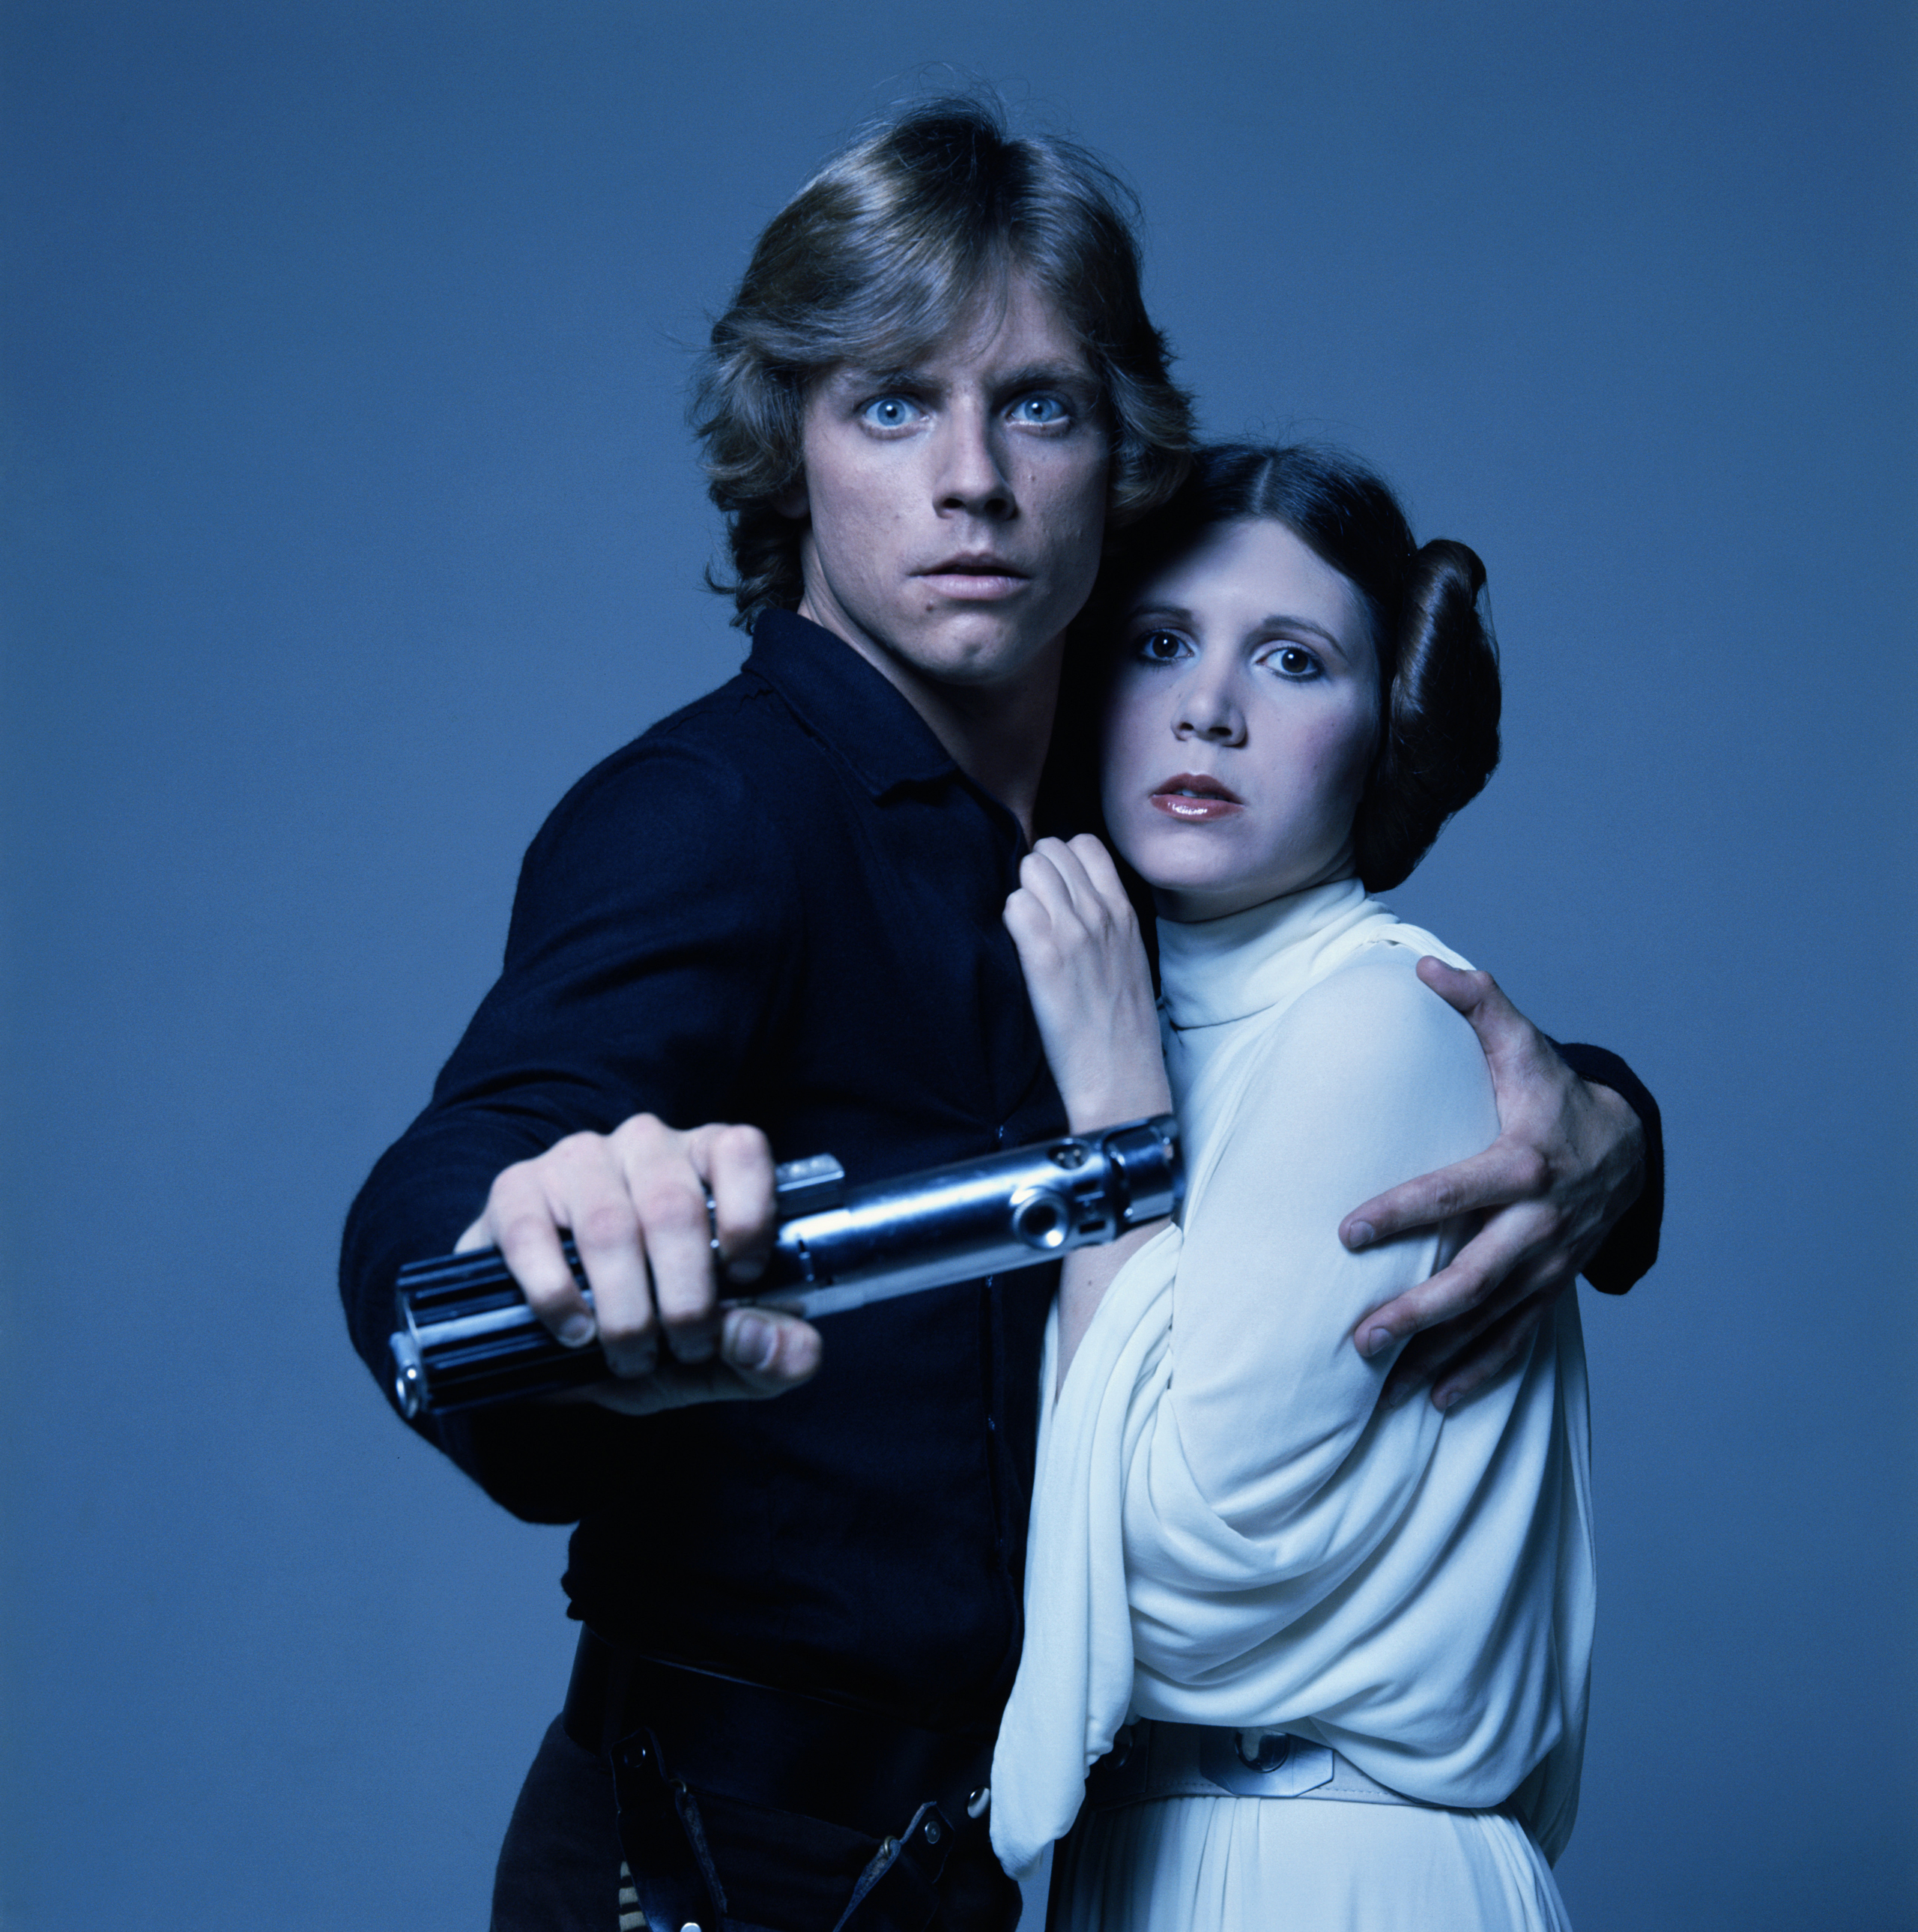 Mark Hamill and Carrie Fisher in costume Luke Skywalker and Princess Leia in George Lucas' Star Wars trilogy, 1977.